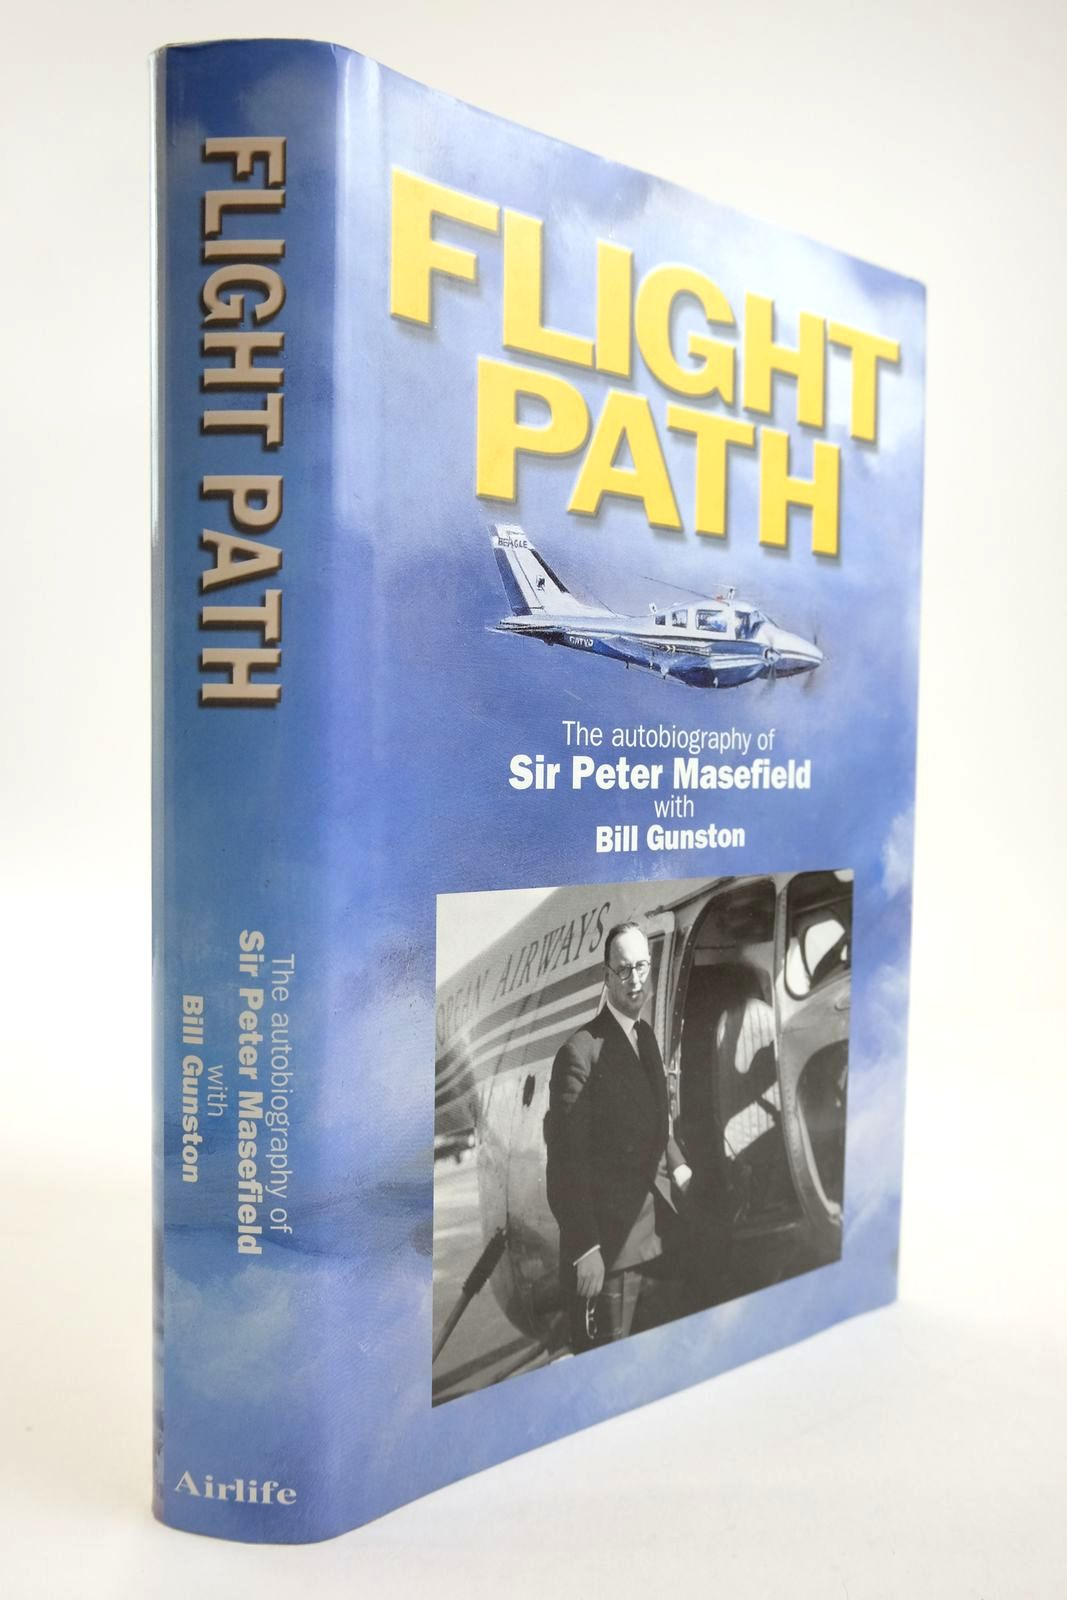 Photo of FLIGHT PATH: THE AUTOBIOGRAPHY OF SIR PETER MASEFIELD written by Masefield, Peter Gunston, Bill published by Airlife (STOCK CODE: 2134090)  for sale by Stella & Rose's Books